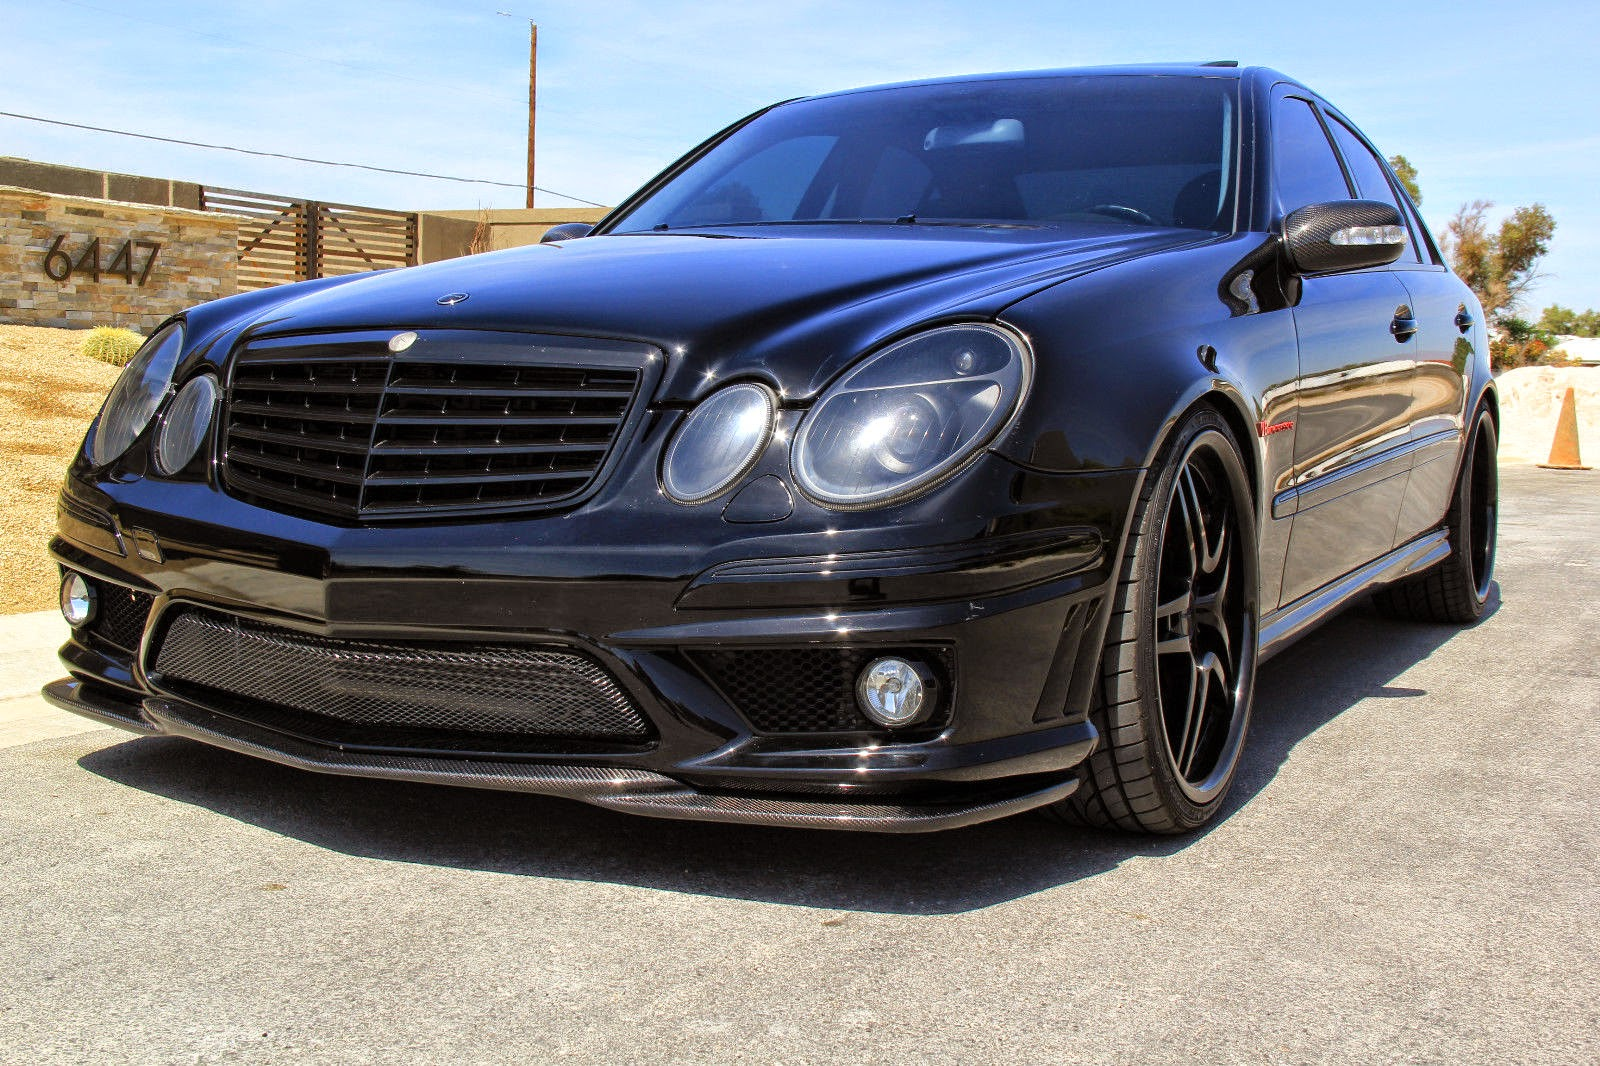 Mercedes benz w211 e55 amg renntech shadowline benztuning for Mercedes benz tuning